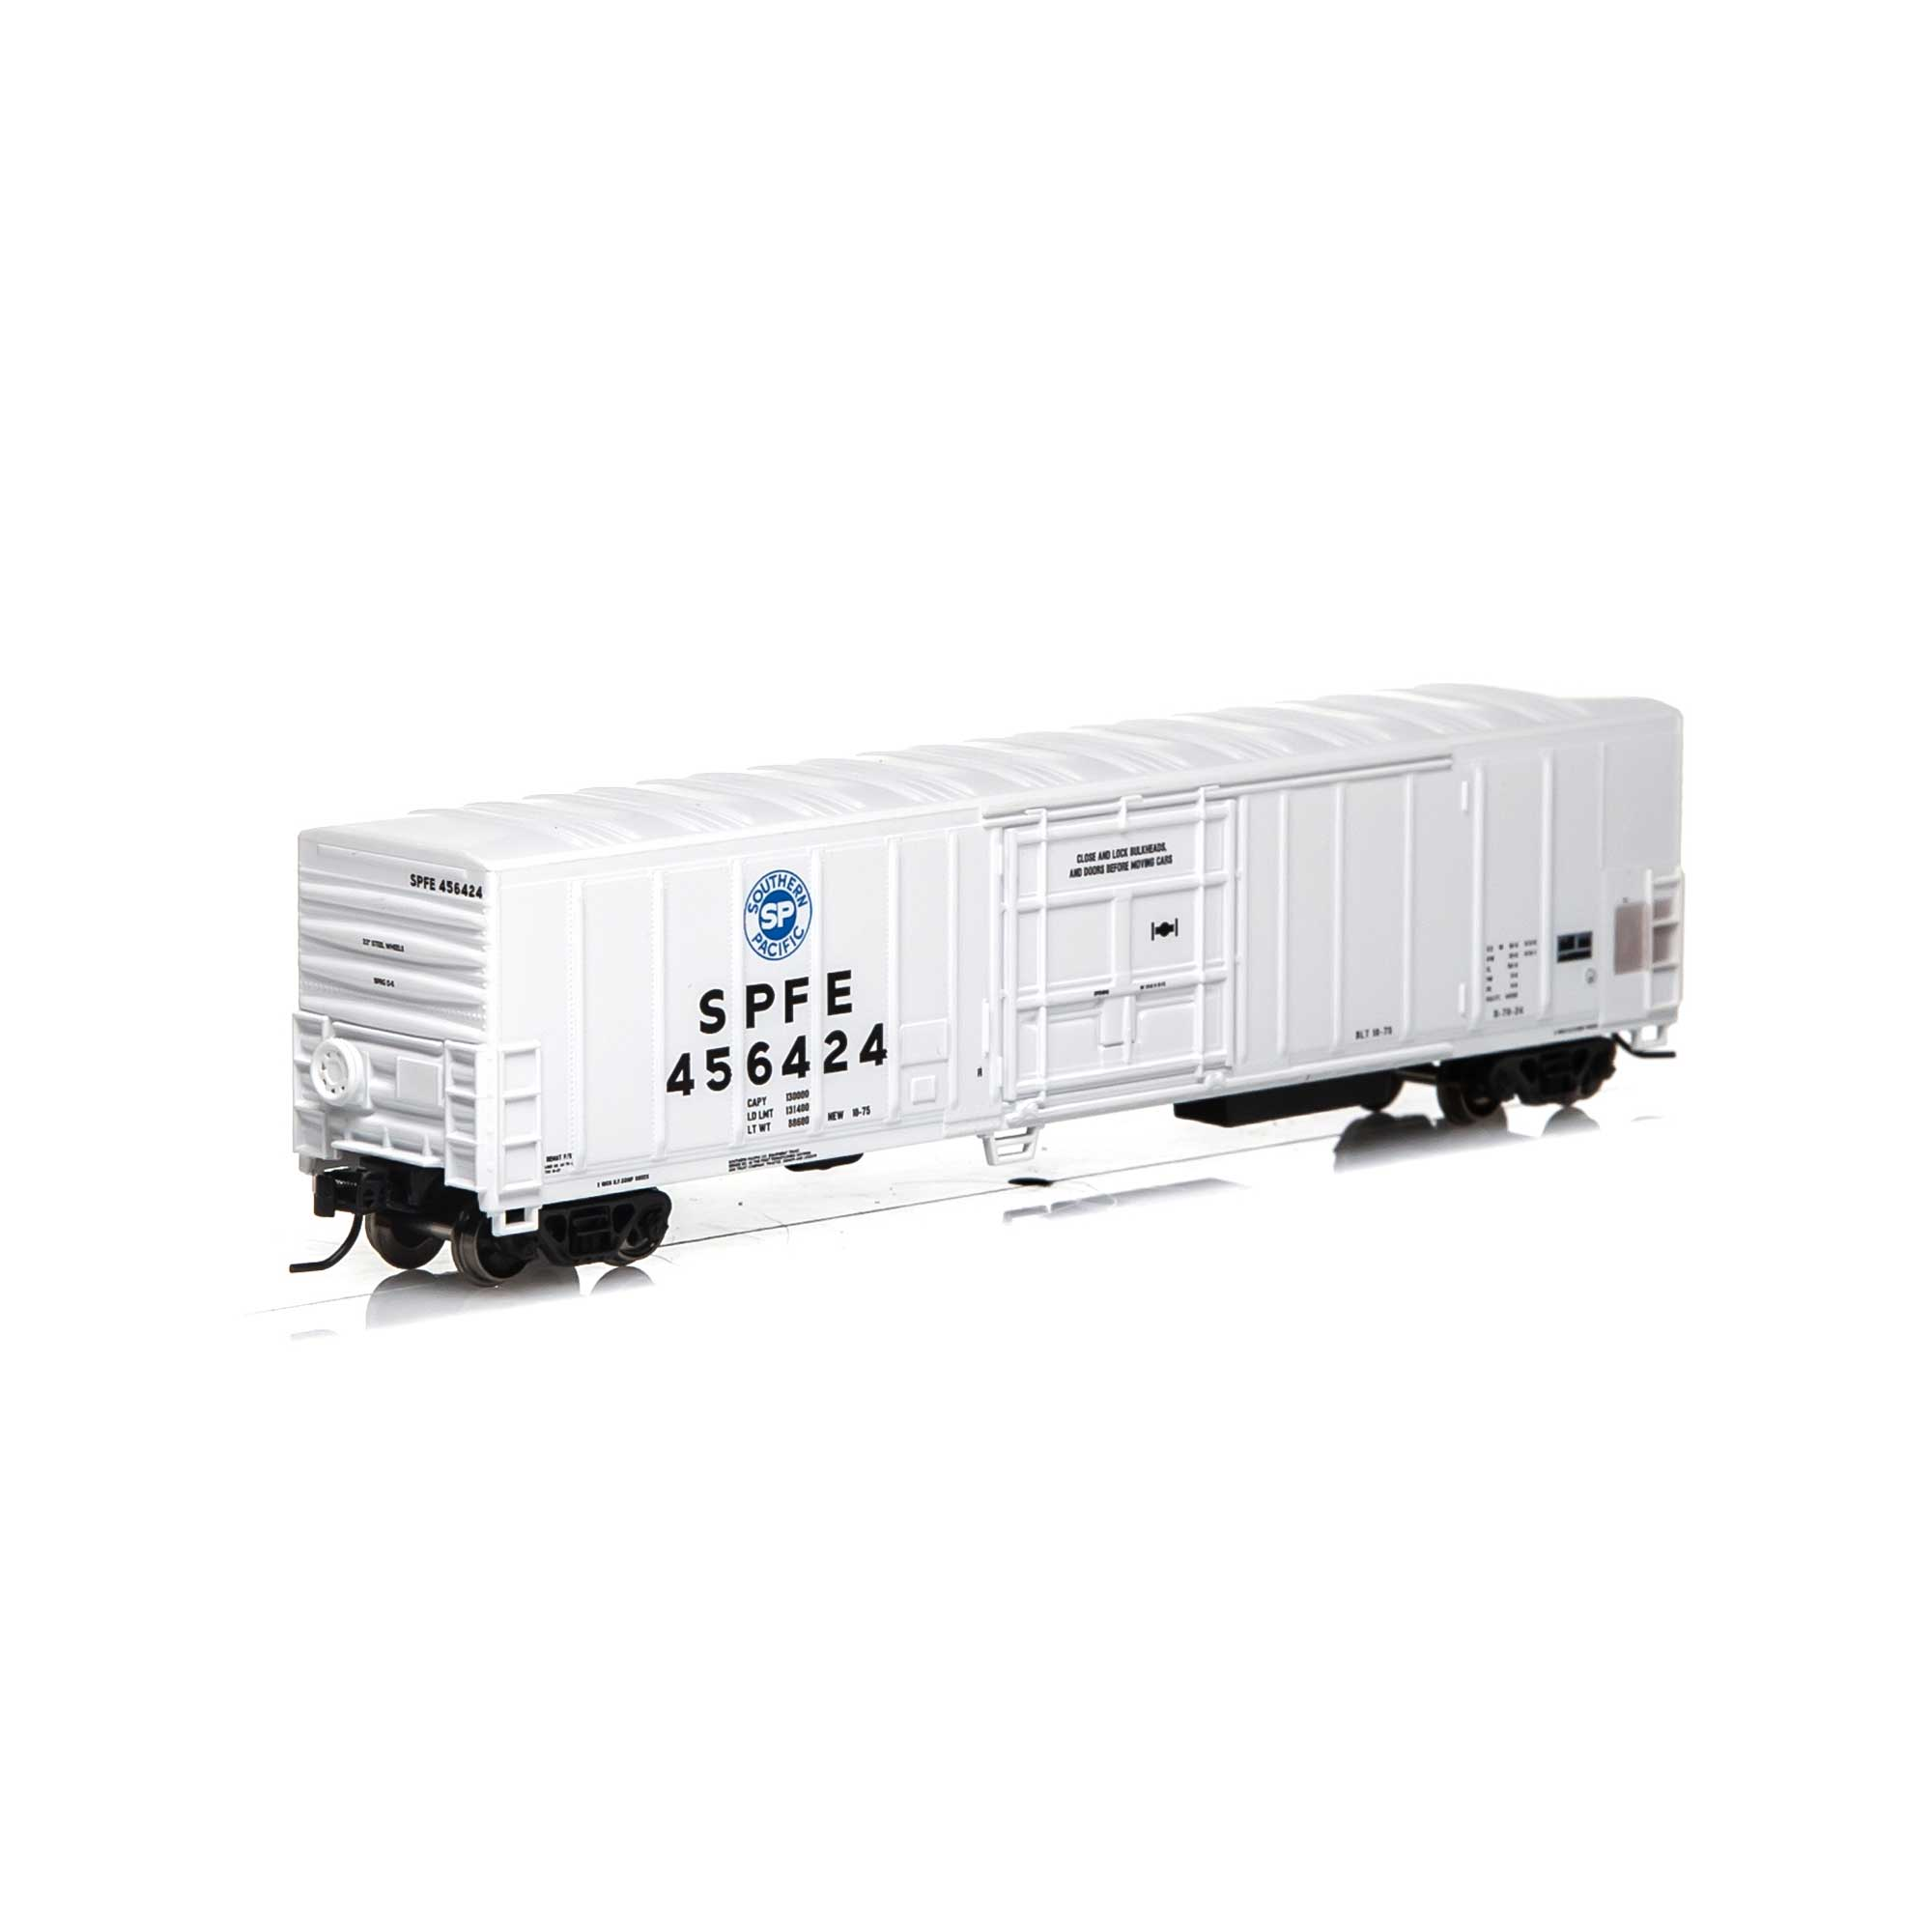 N Scale - Athearn - 25332 - Reefer, 57 Foot, Mechanical, PC&F R-70-20 - Southern Pacific - 456424